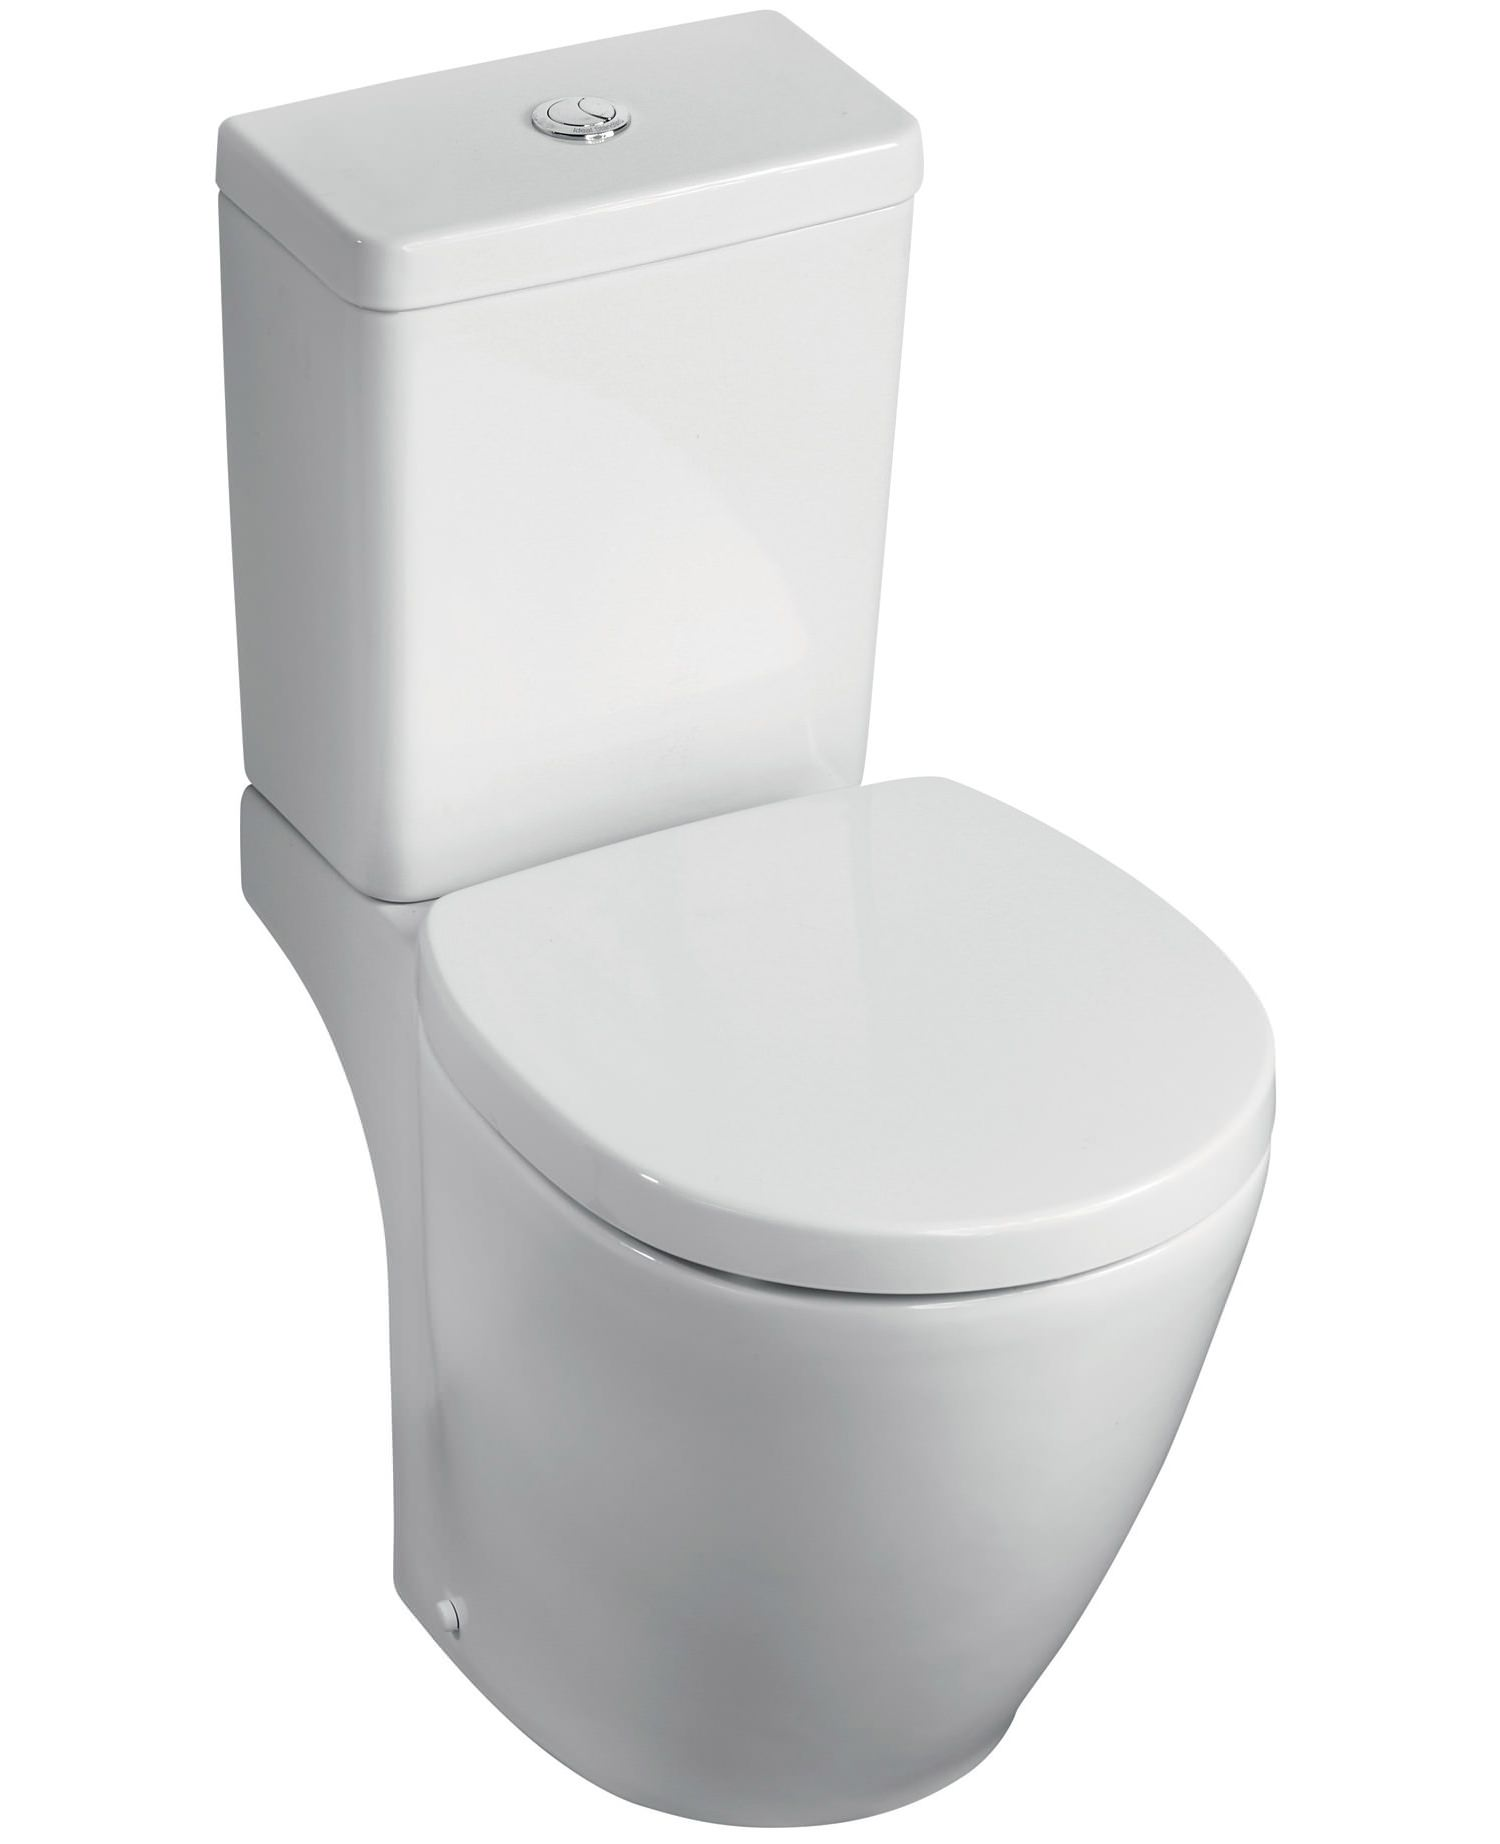 Ideal standard concept space cube compact close coupled wc pan 605mm e120501 - Small toilets for tight spaces concept ...